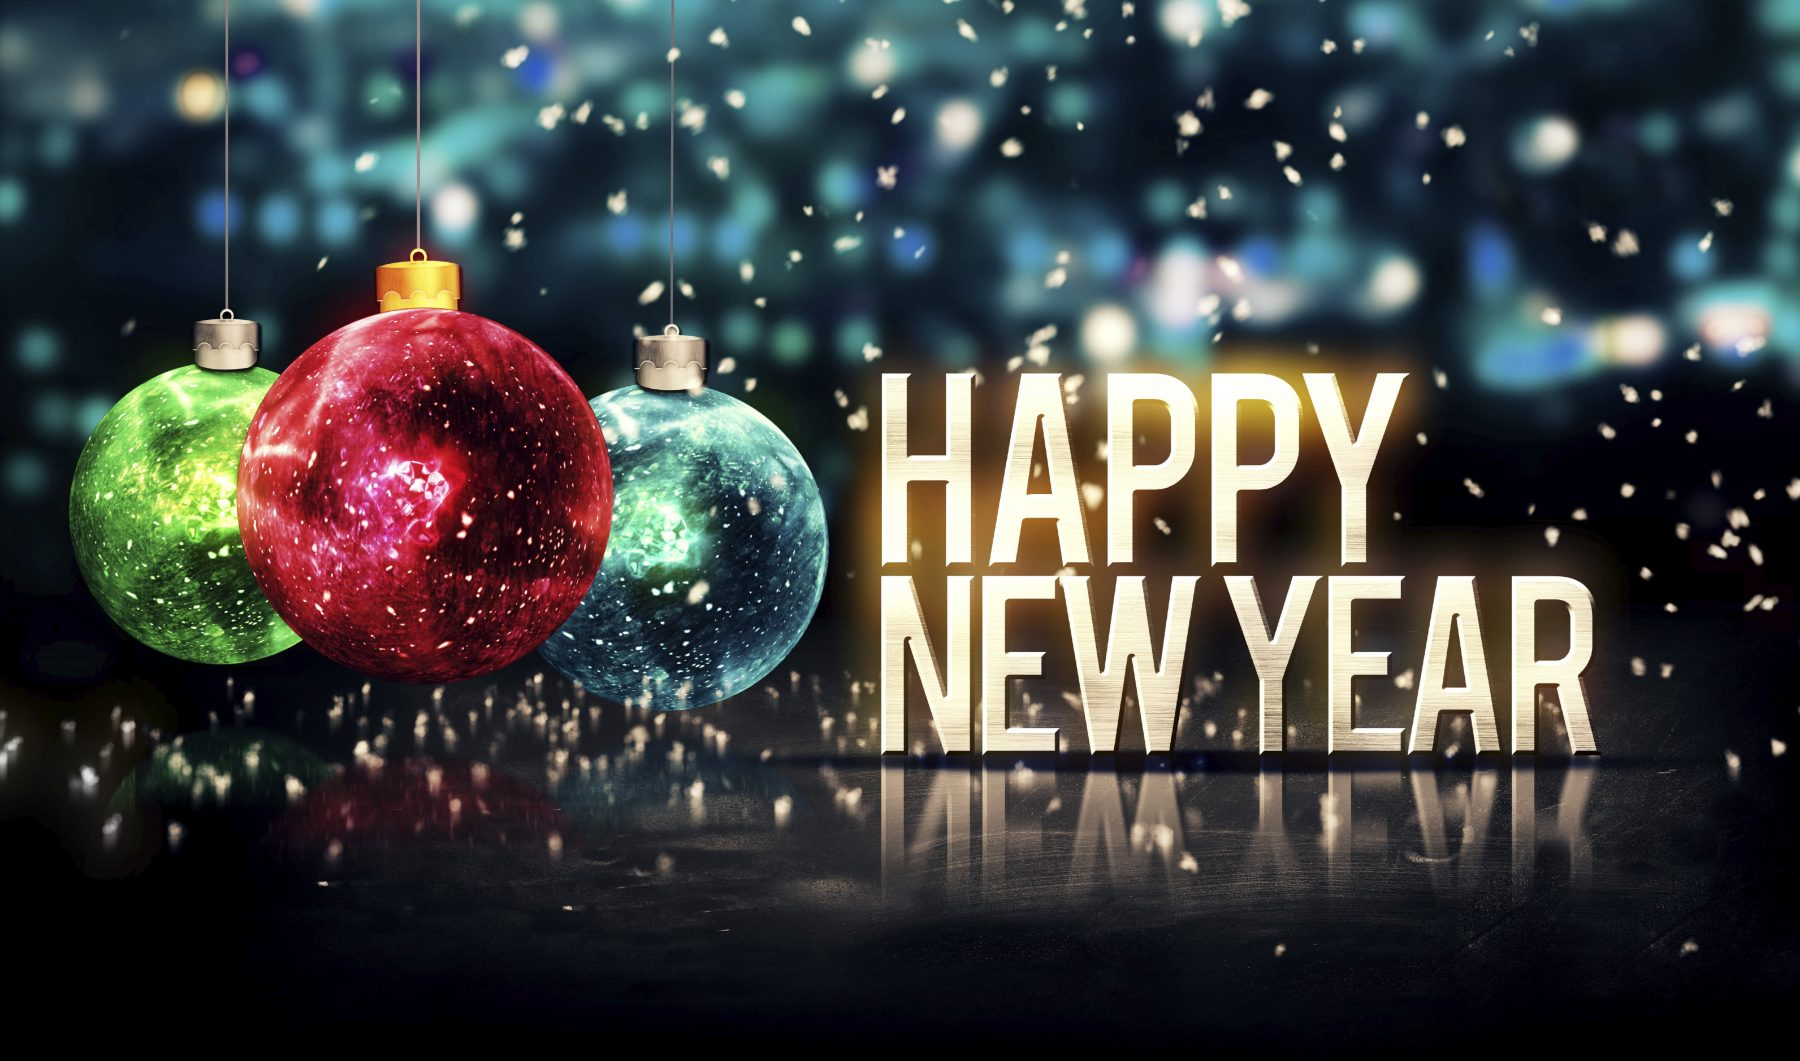 Happy New Year 2019 Hd Wallpapers 7wallpapers Net